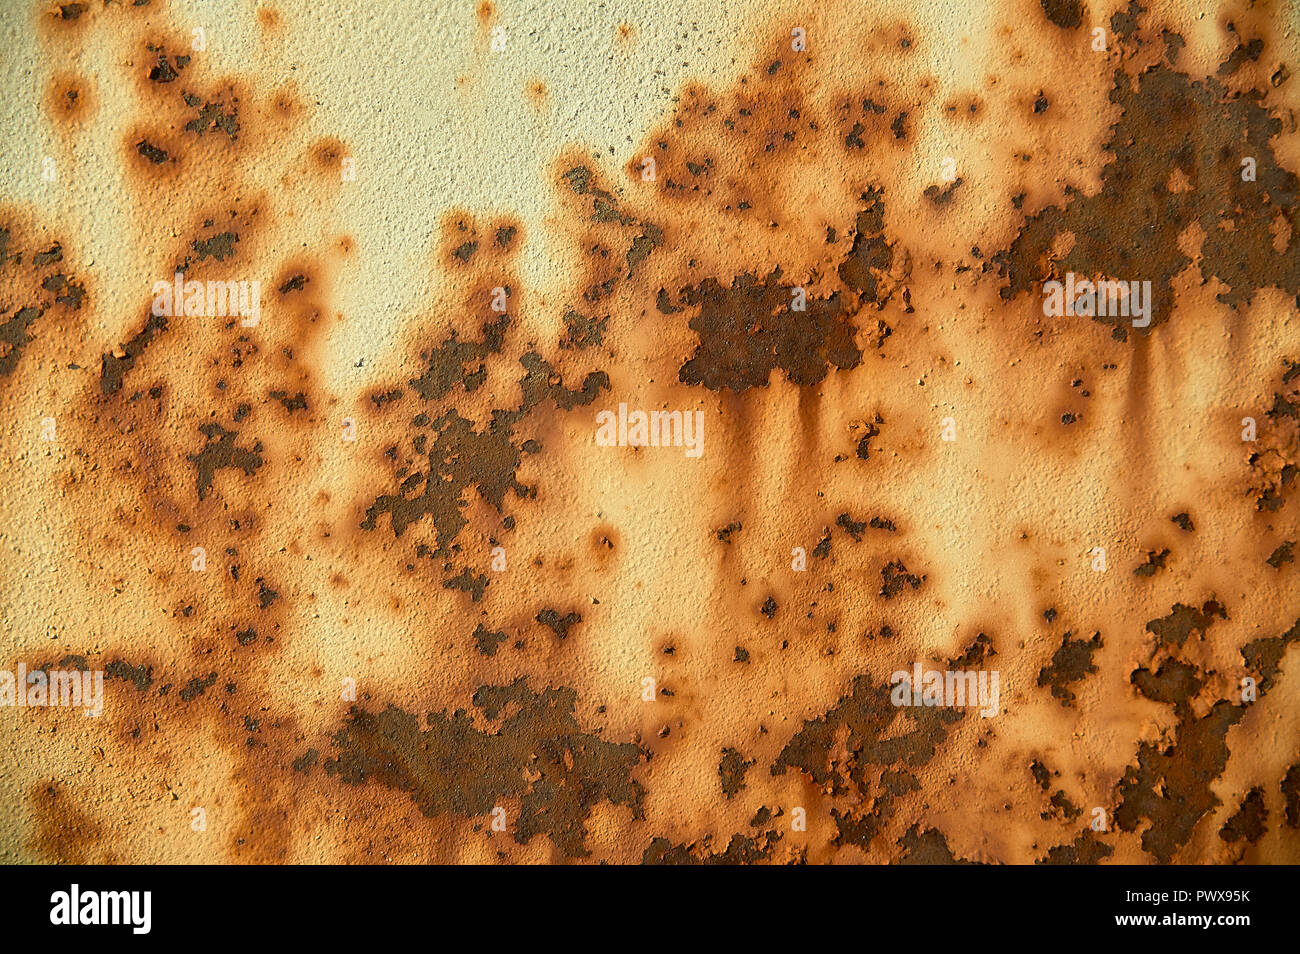 High Definition Texture Of A Rusty Weathered Ferrous Surface Stock Photo Alamy